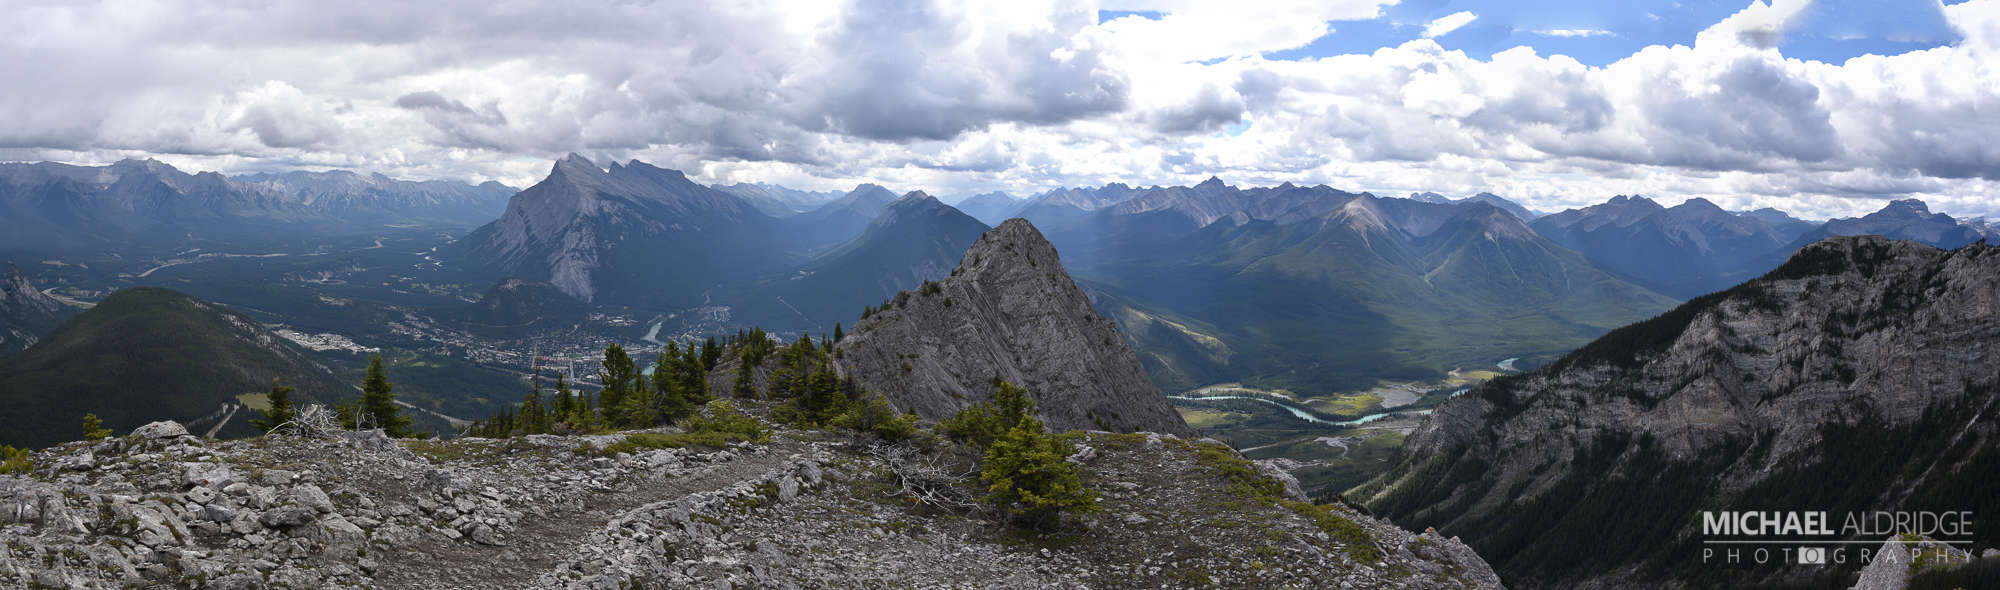 View from Mt. Norquay, Banff